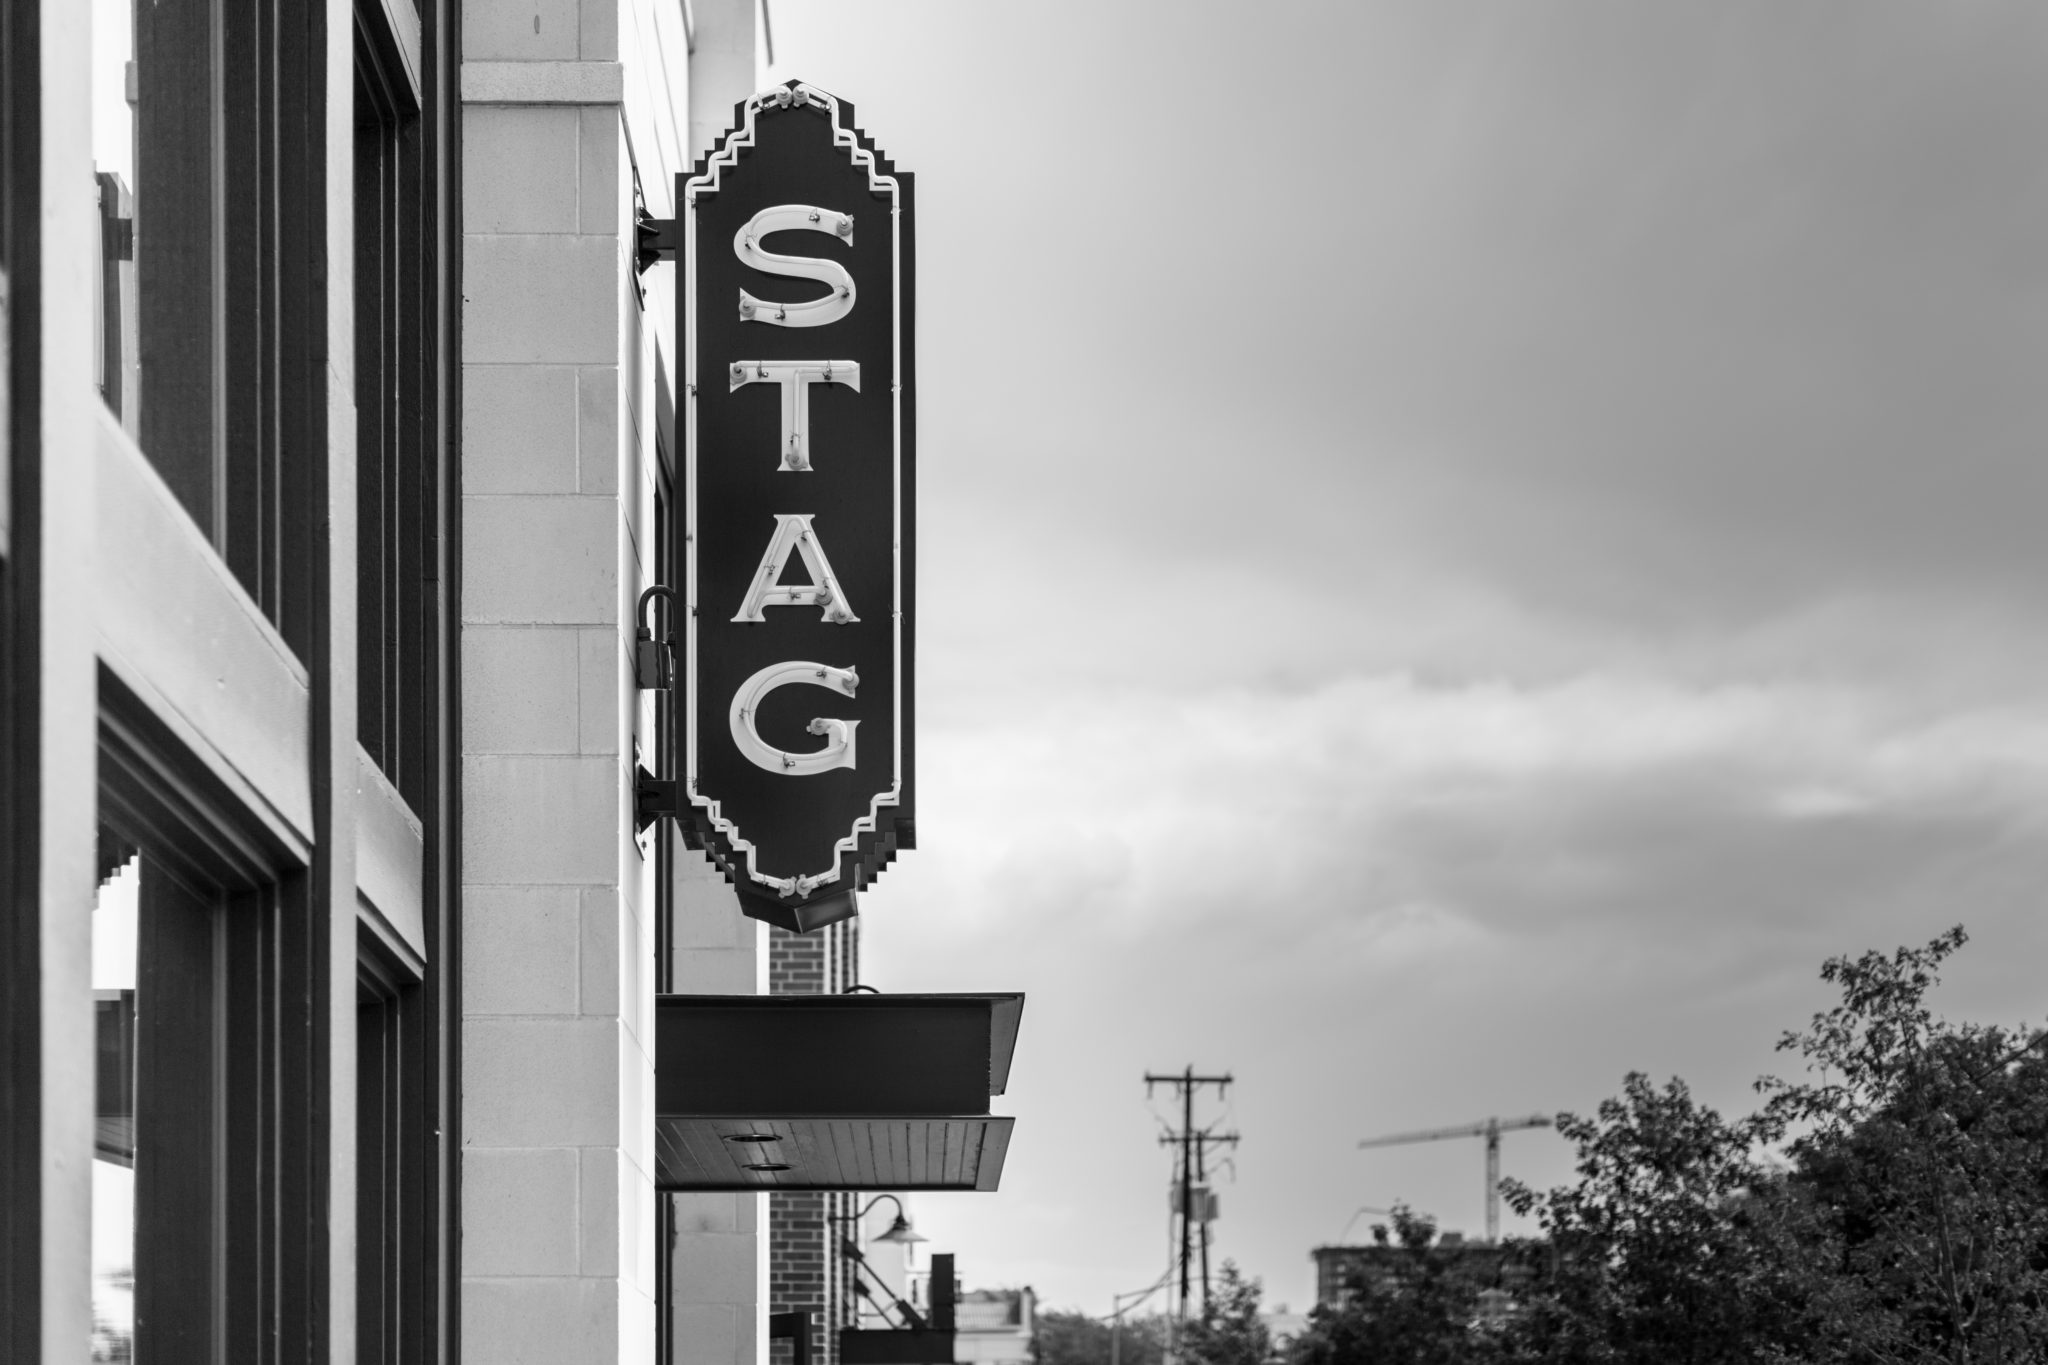 STAG – DALLAS